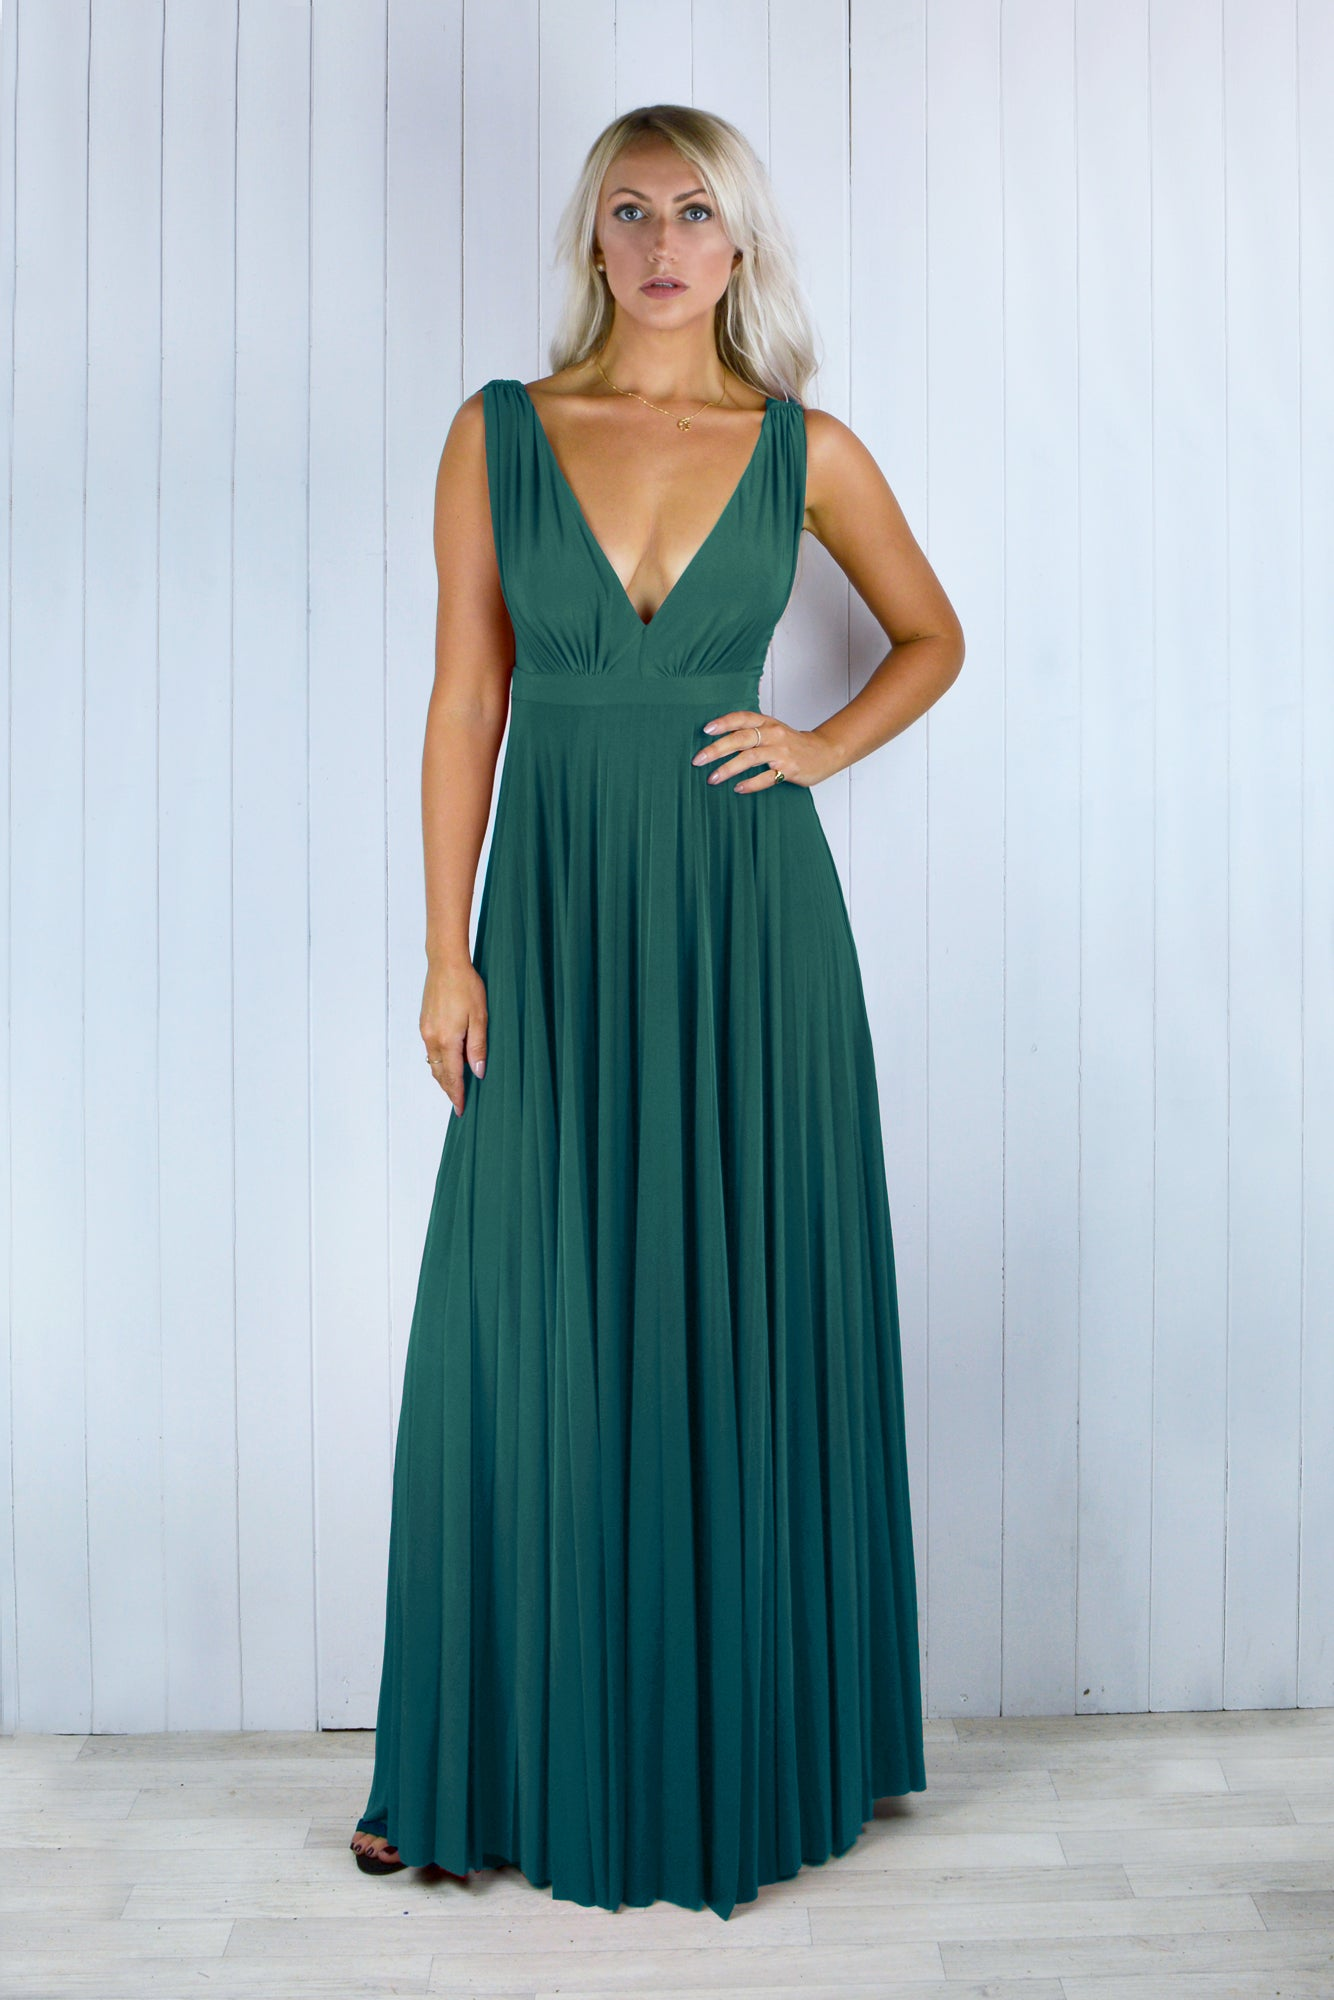 57737adeff5a0 Zola Pleated Maxi Dress in Forest Green – Henry Hunt